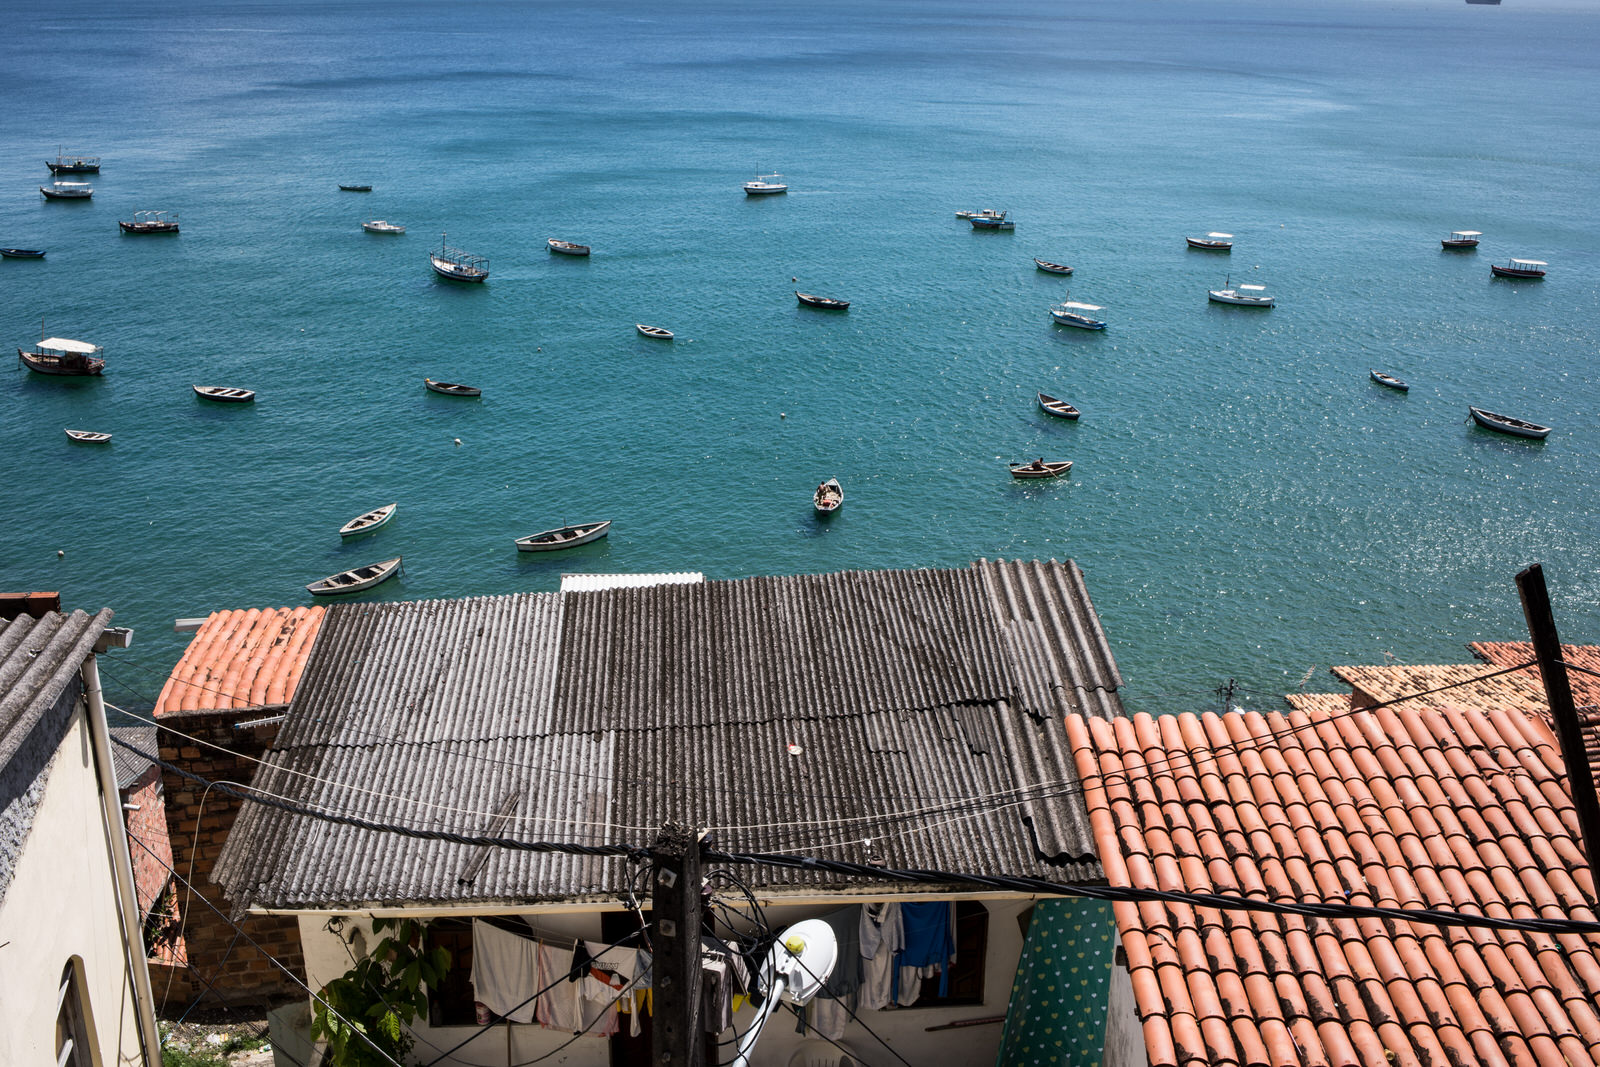 Gamboa de Baixo is a neighbourhood located near the coastline and close to  Pelourinho , the historic city centre. It is a traditional fishing community of about 350 predominantly black families.